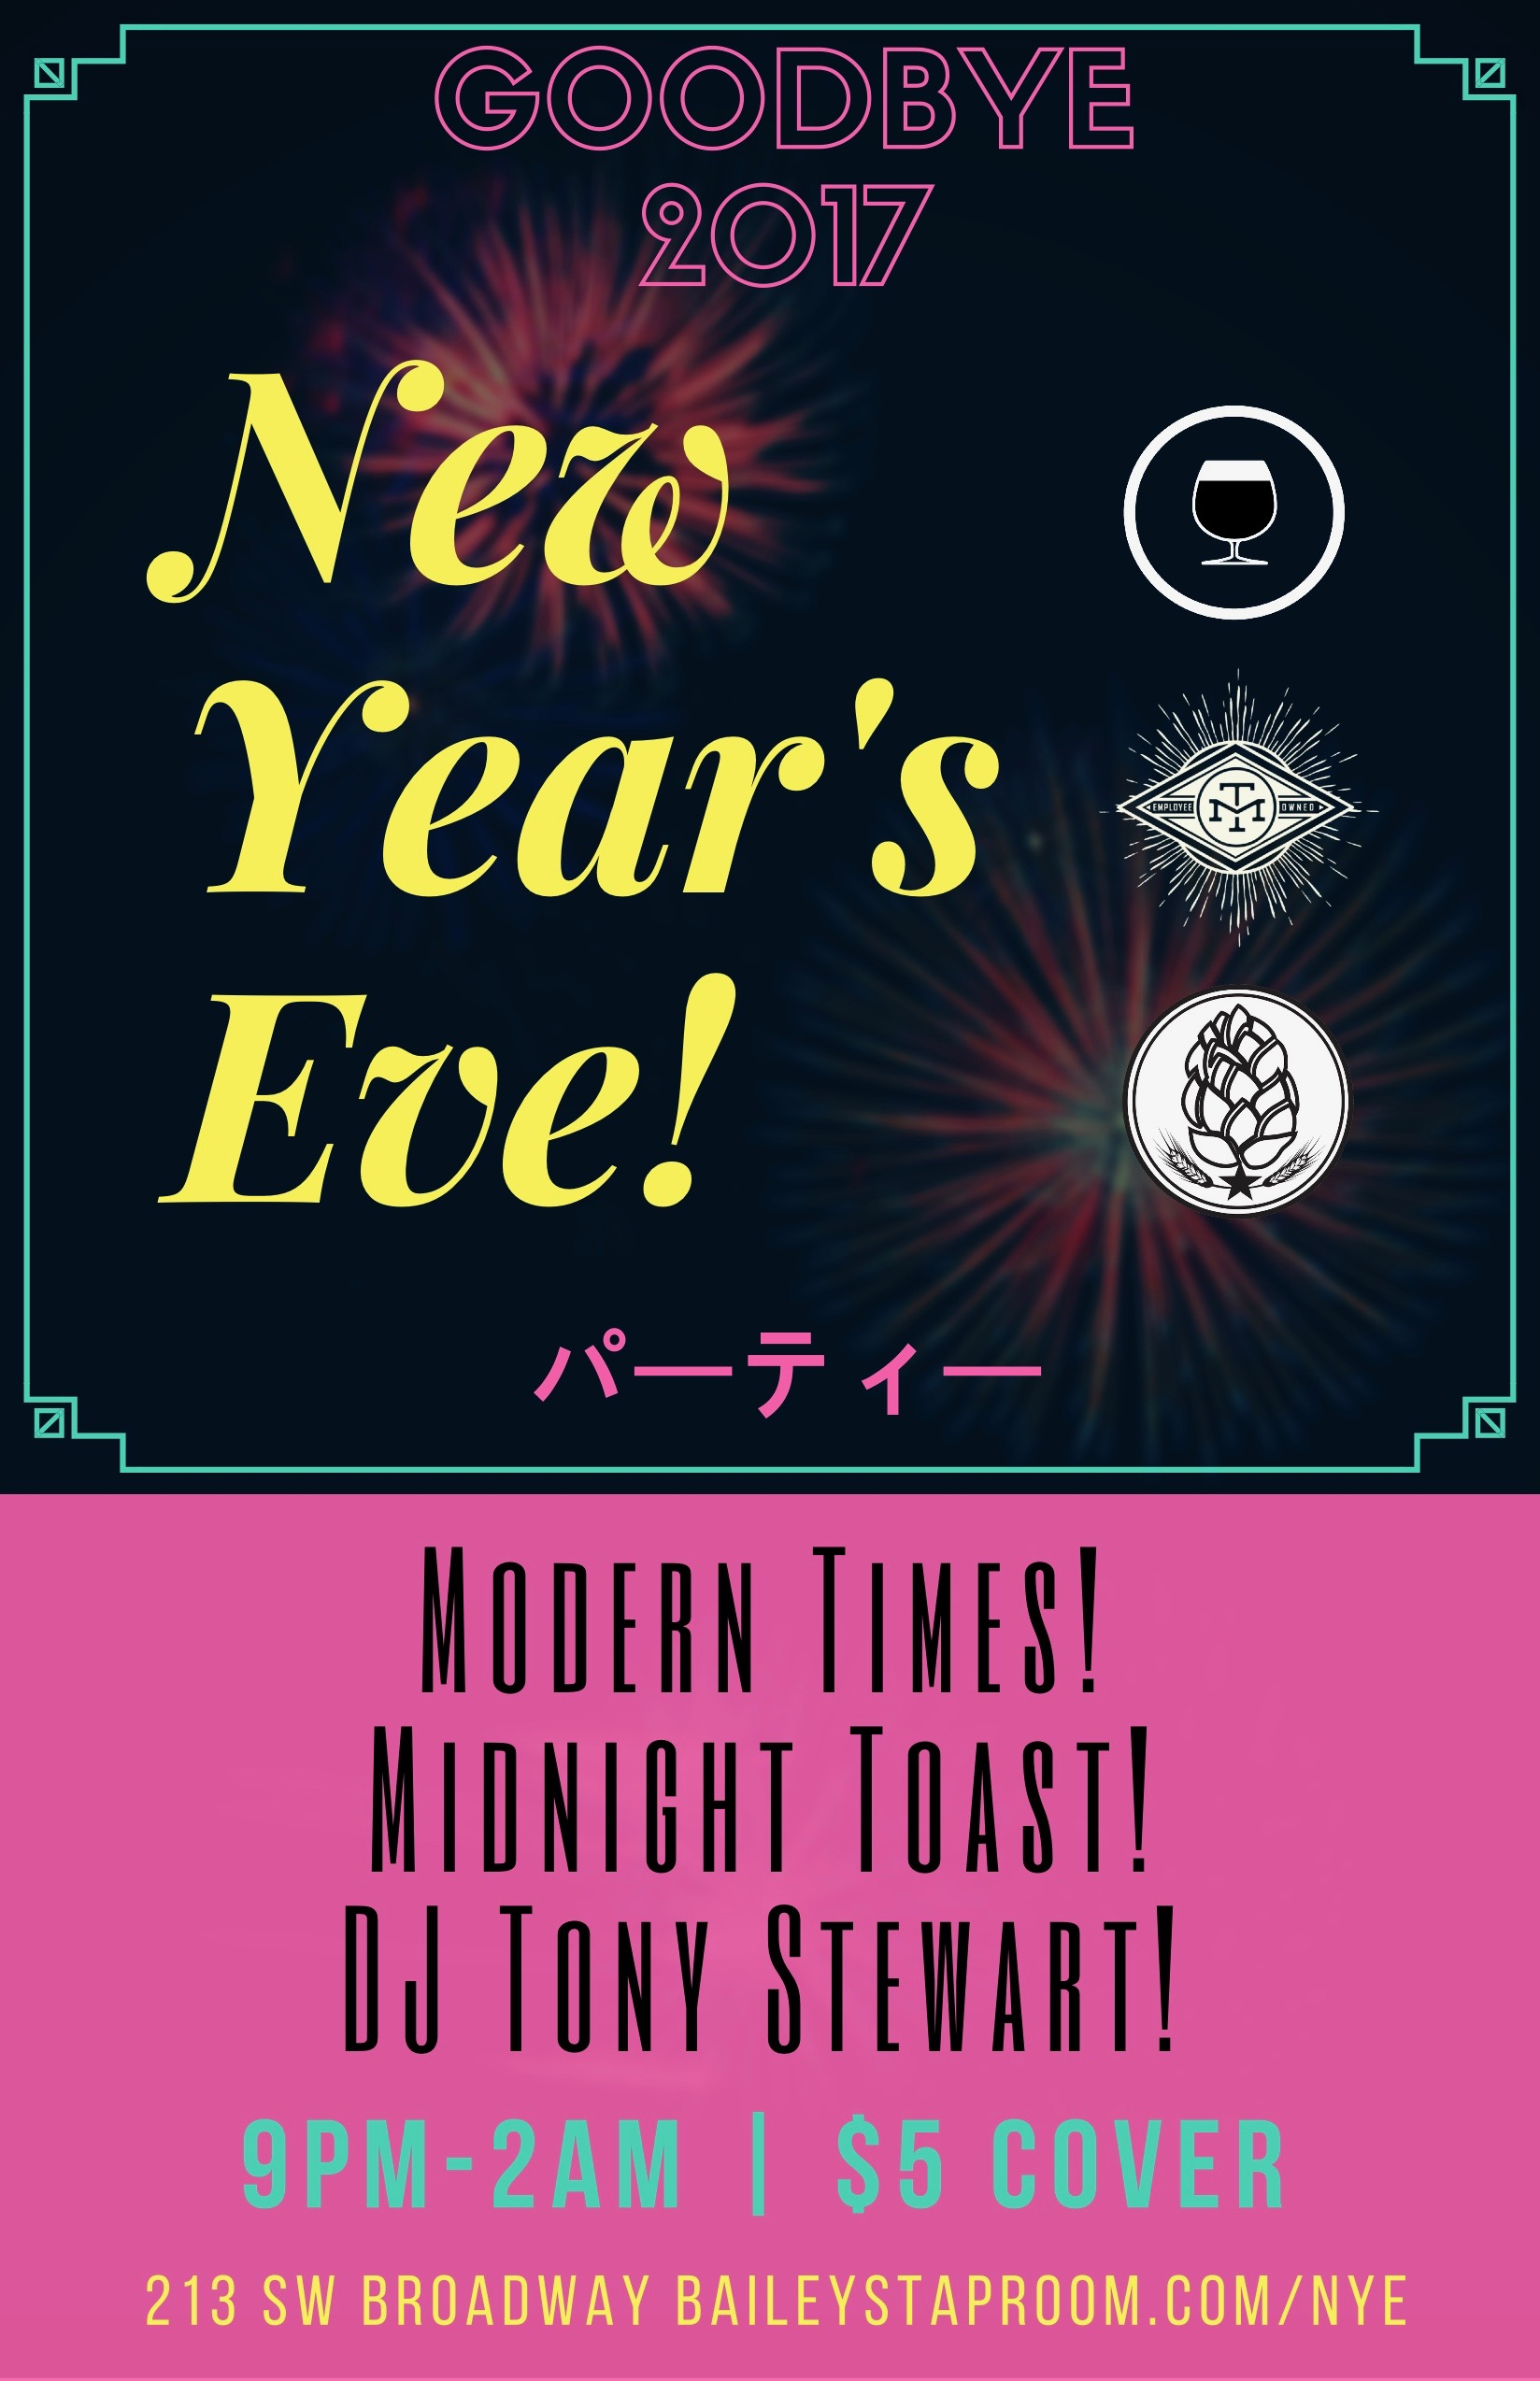 BREWPUBLIC Modern Times New Year's Eve 2018 Poster